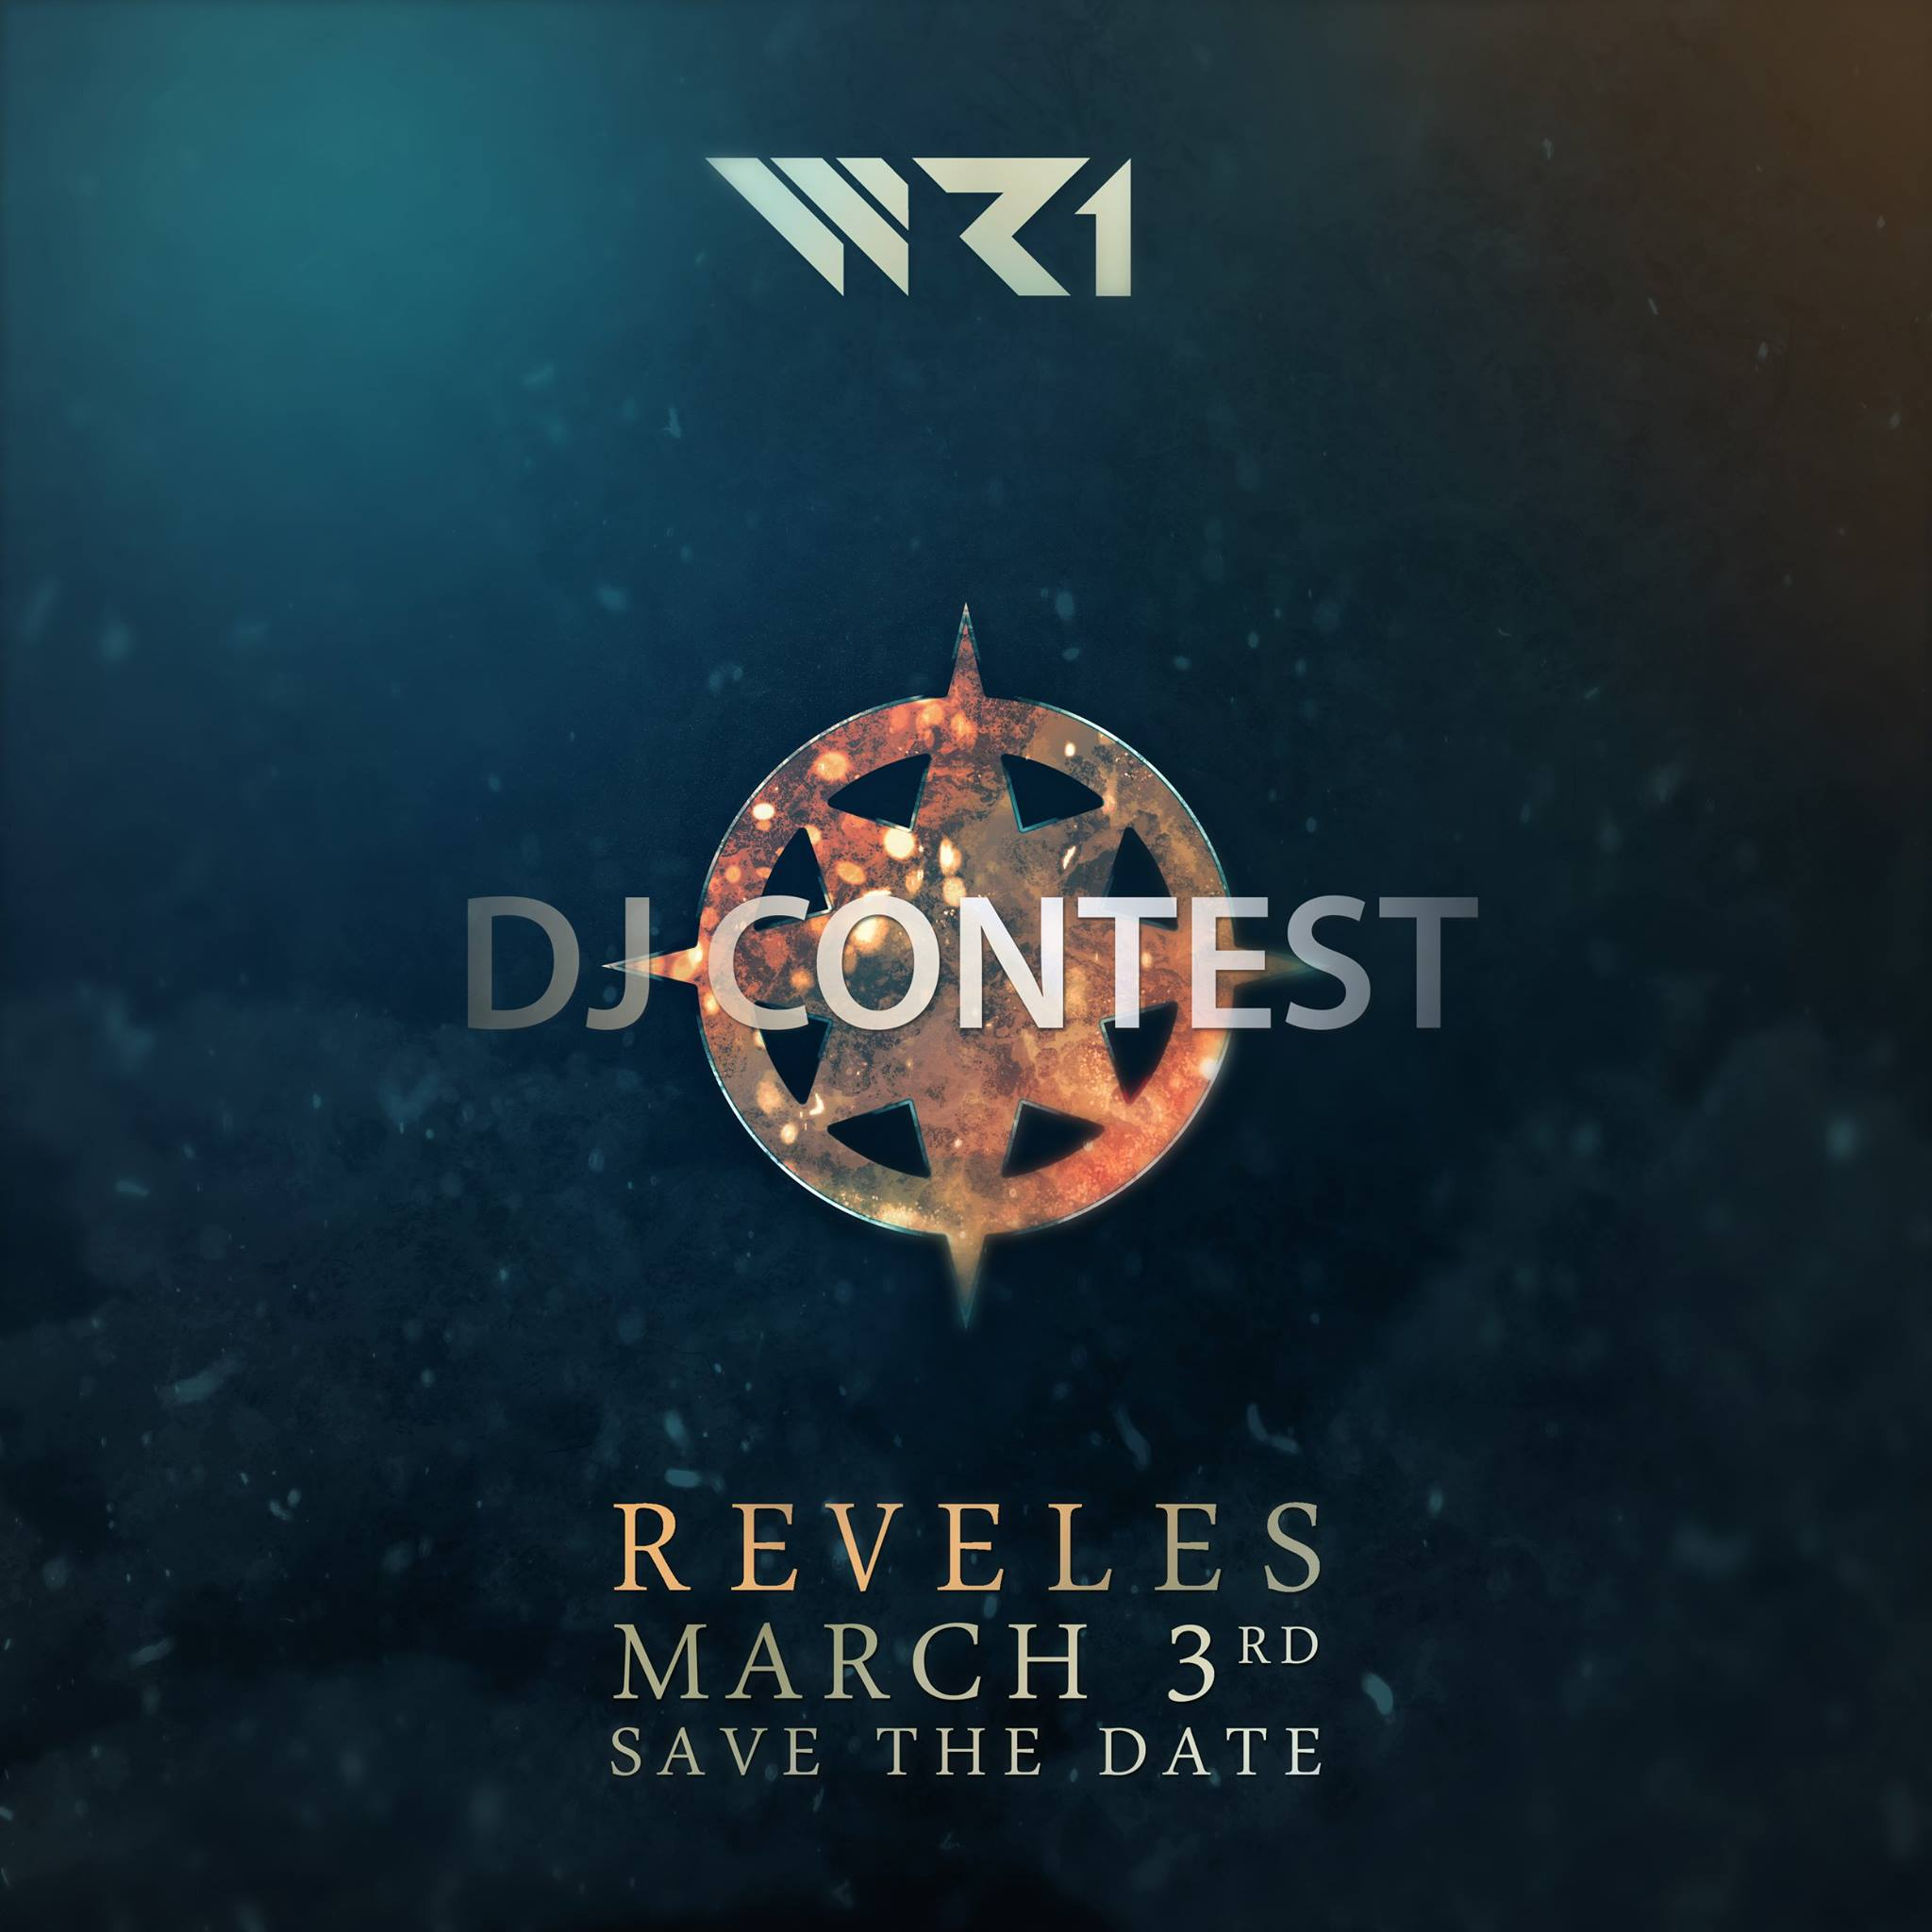 WR1 presents Reveles: DJ Contest